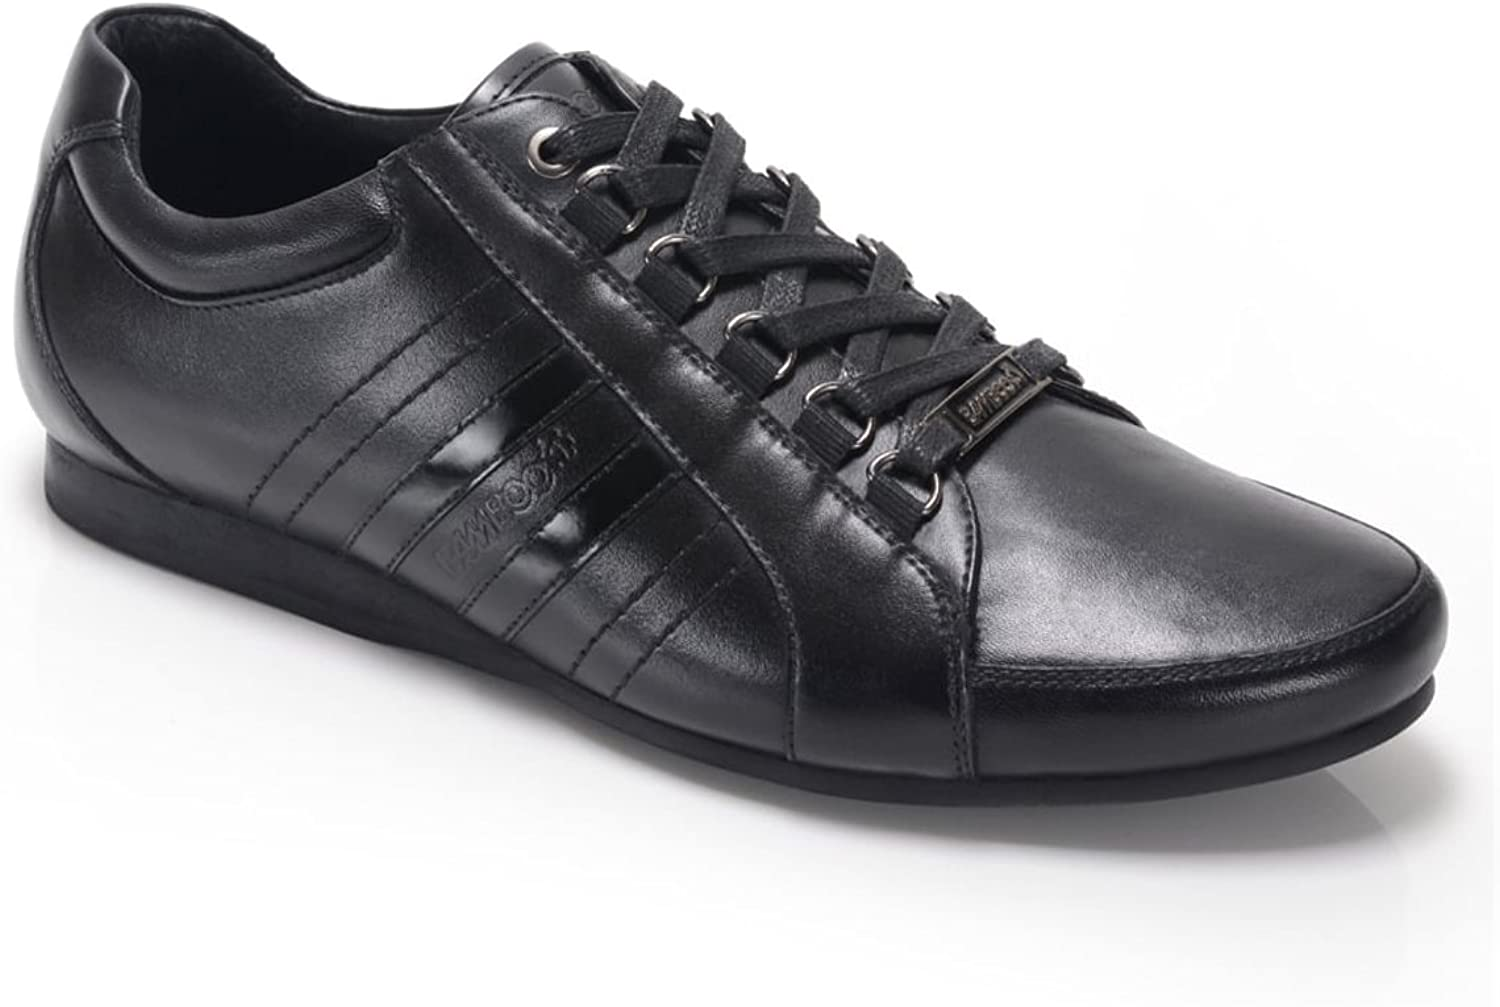 Bamboo A CARDUCCI Mens Leather Lace Up Trainer shoes Black